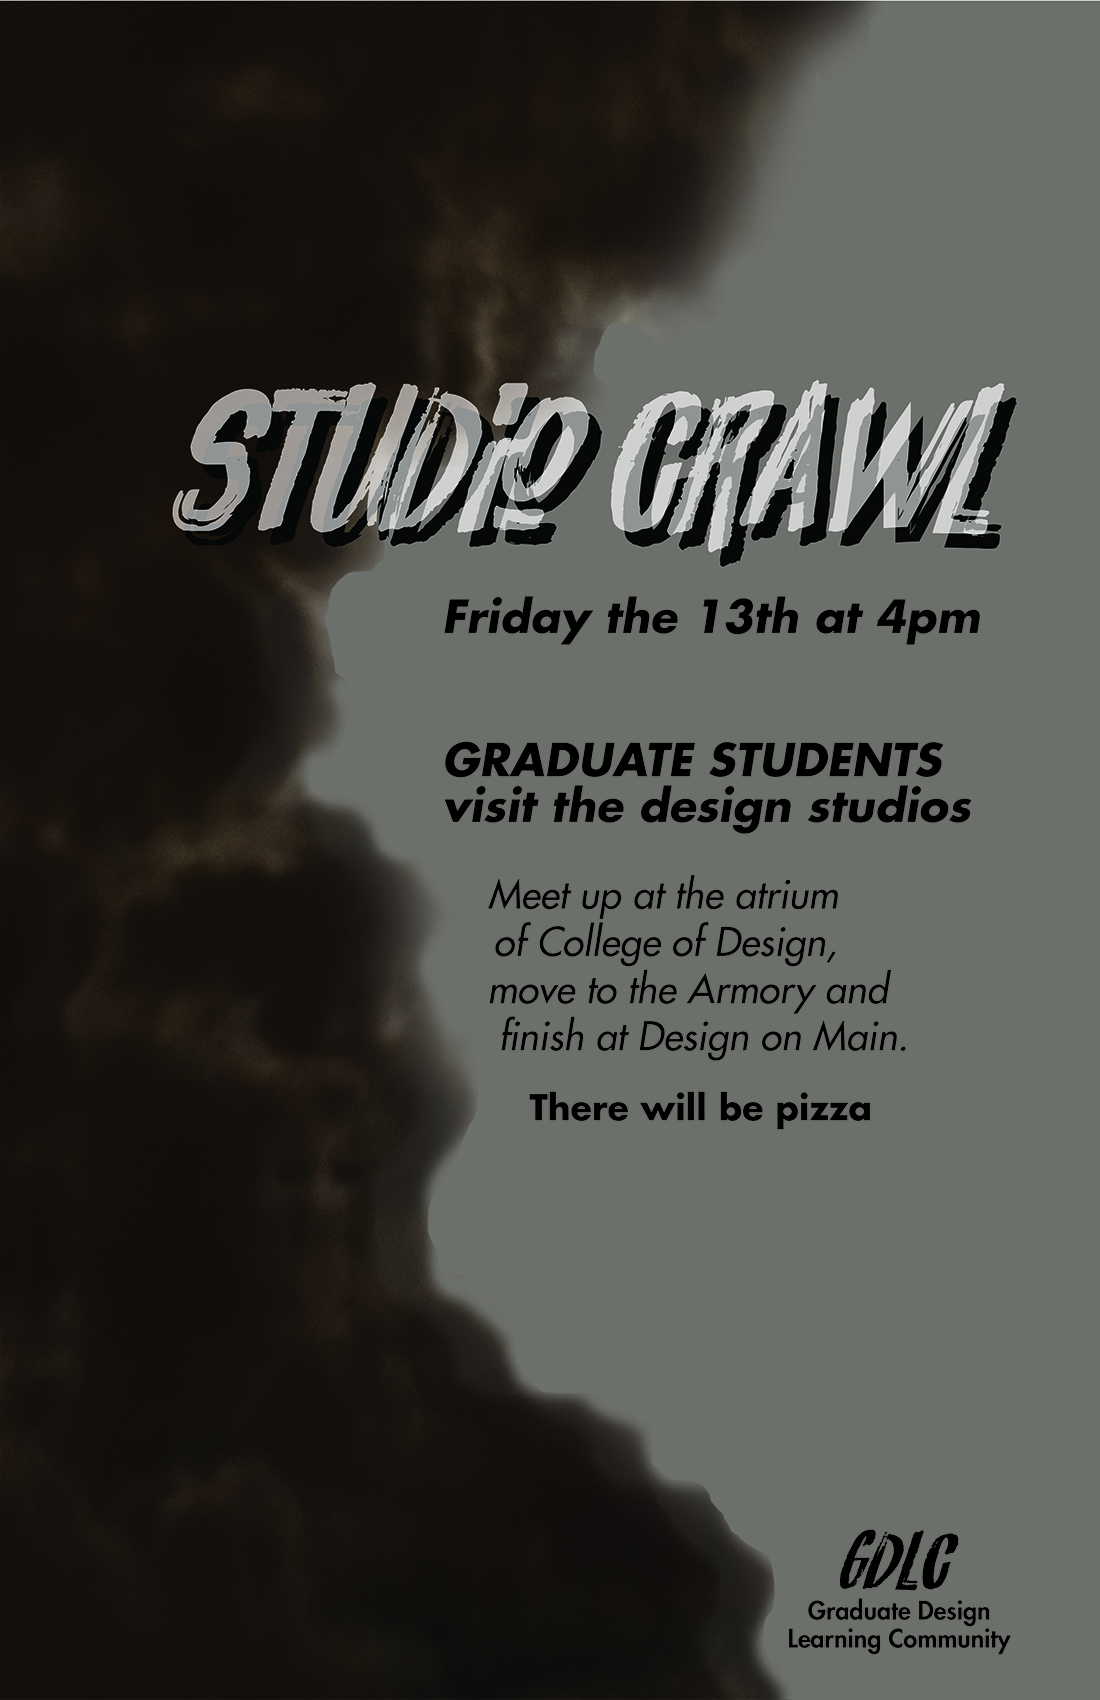 Studio crawl